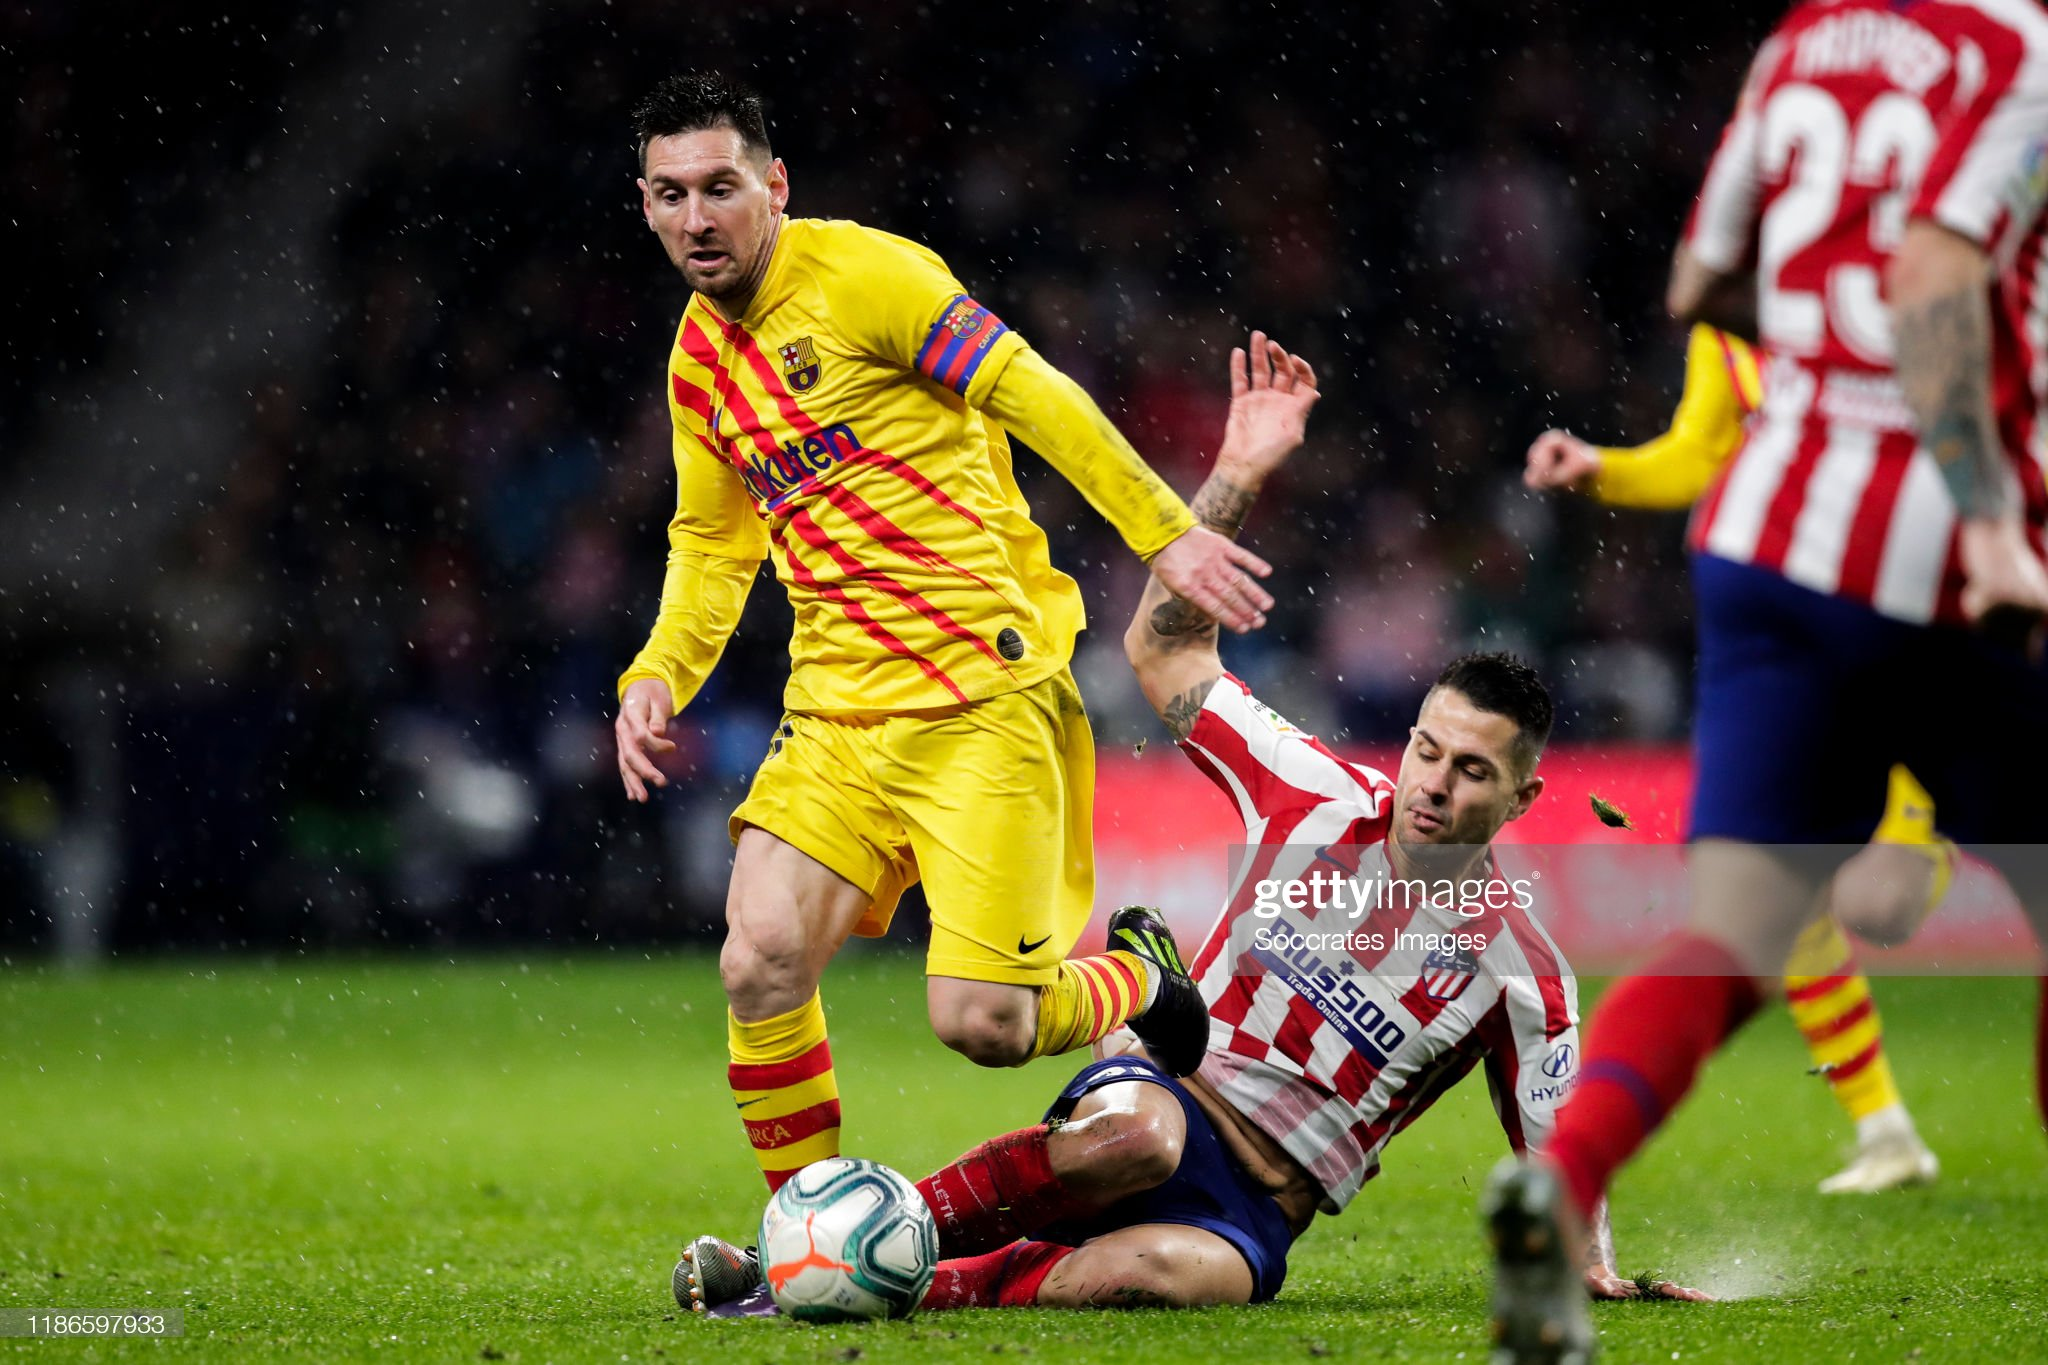 Barcelona v Atletico Madrid preview, prediction and odds